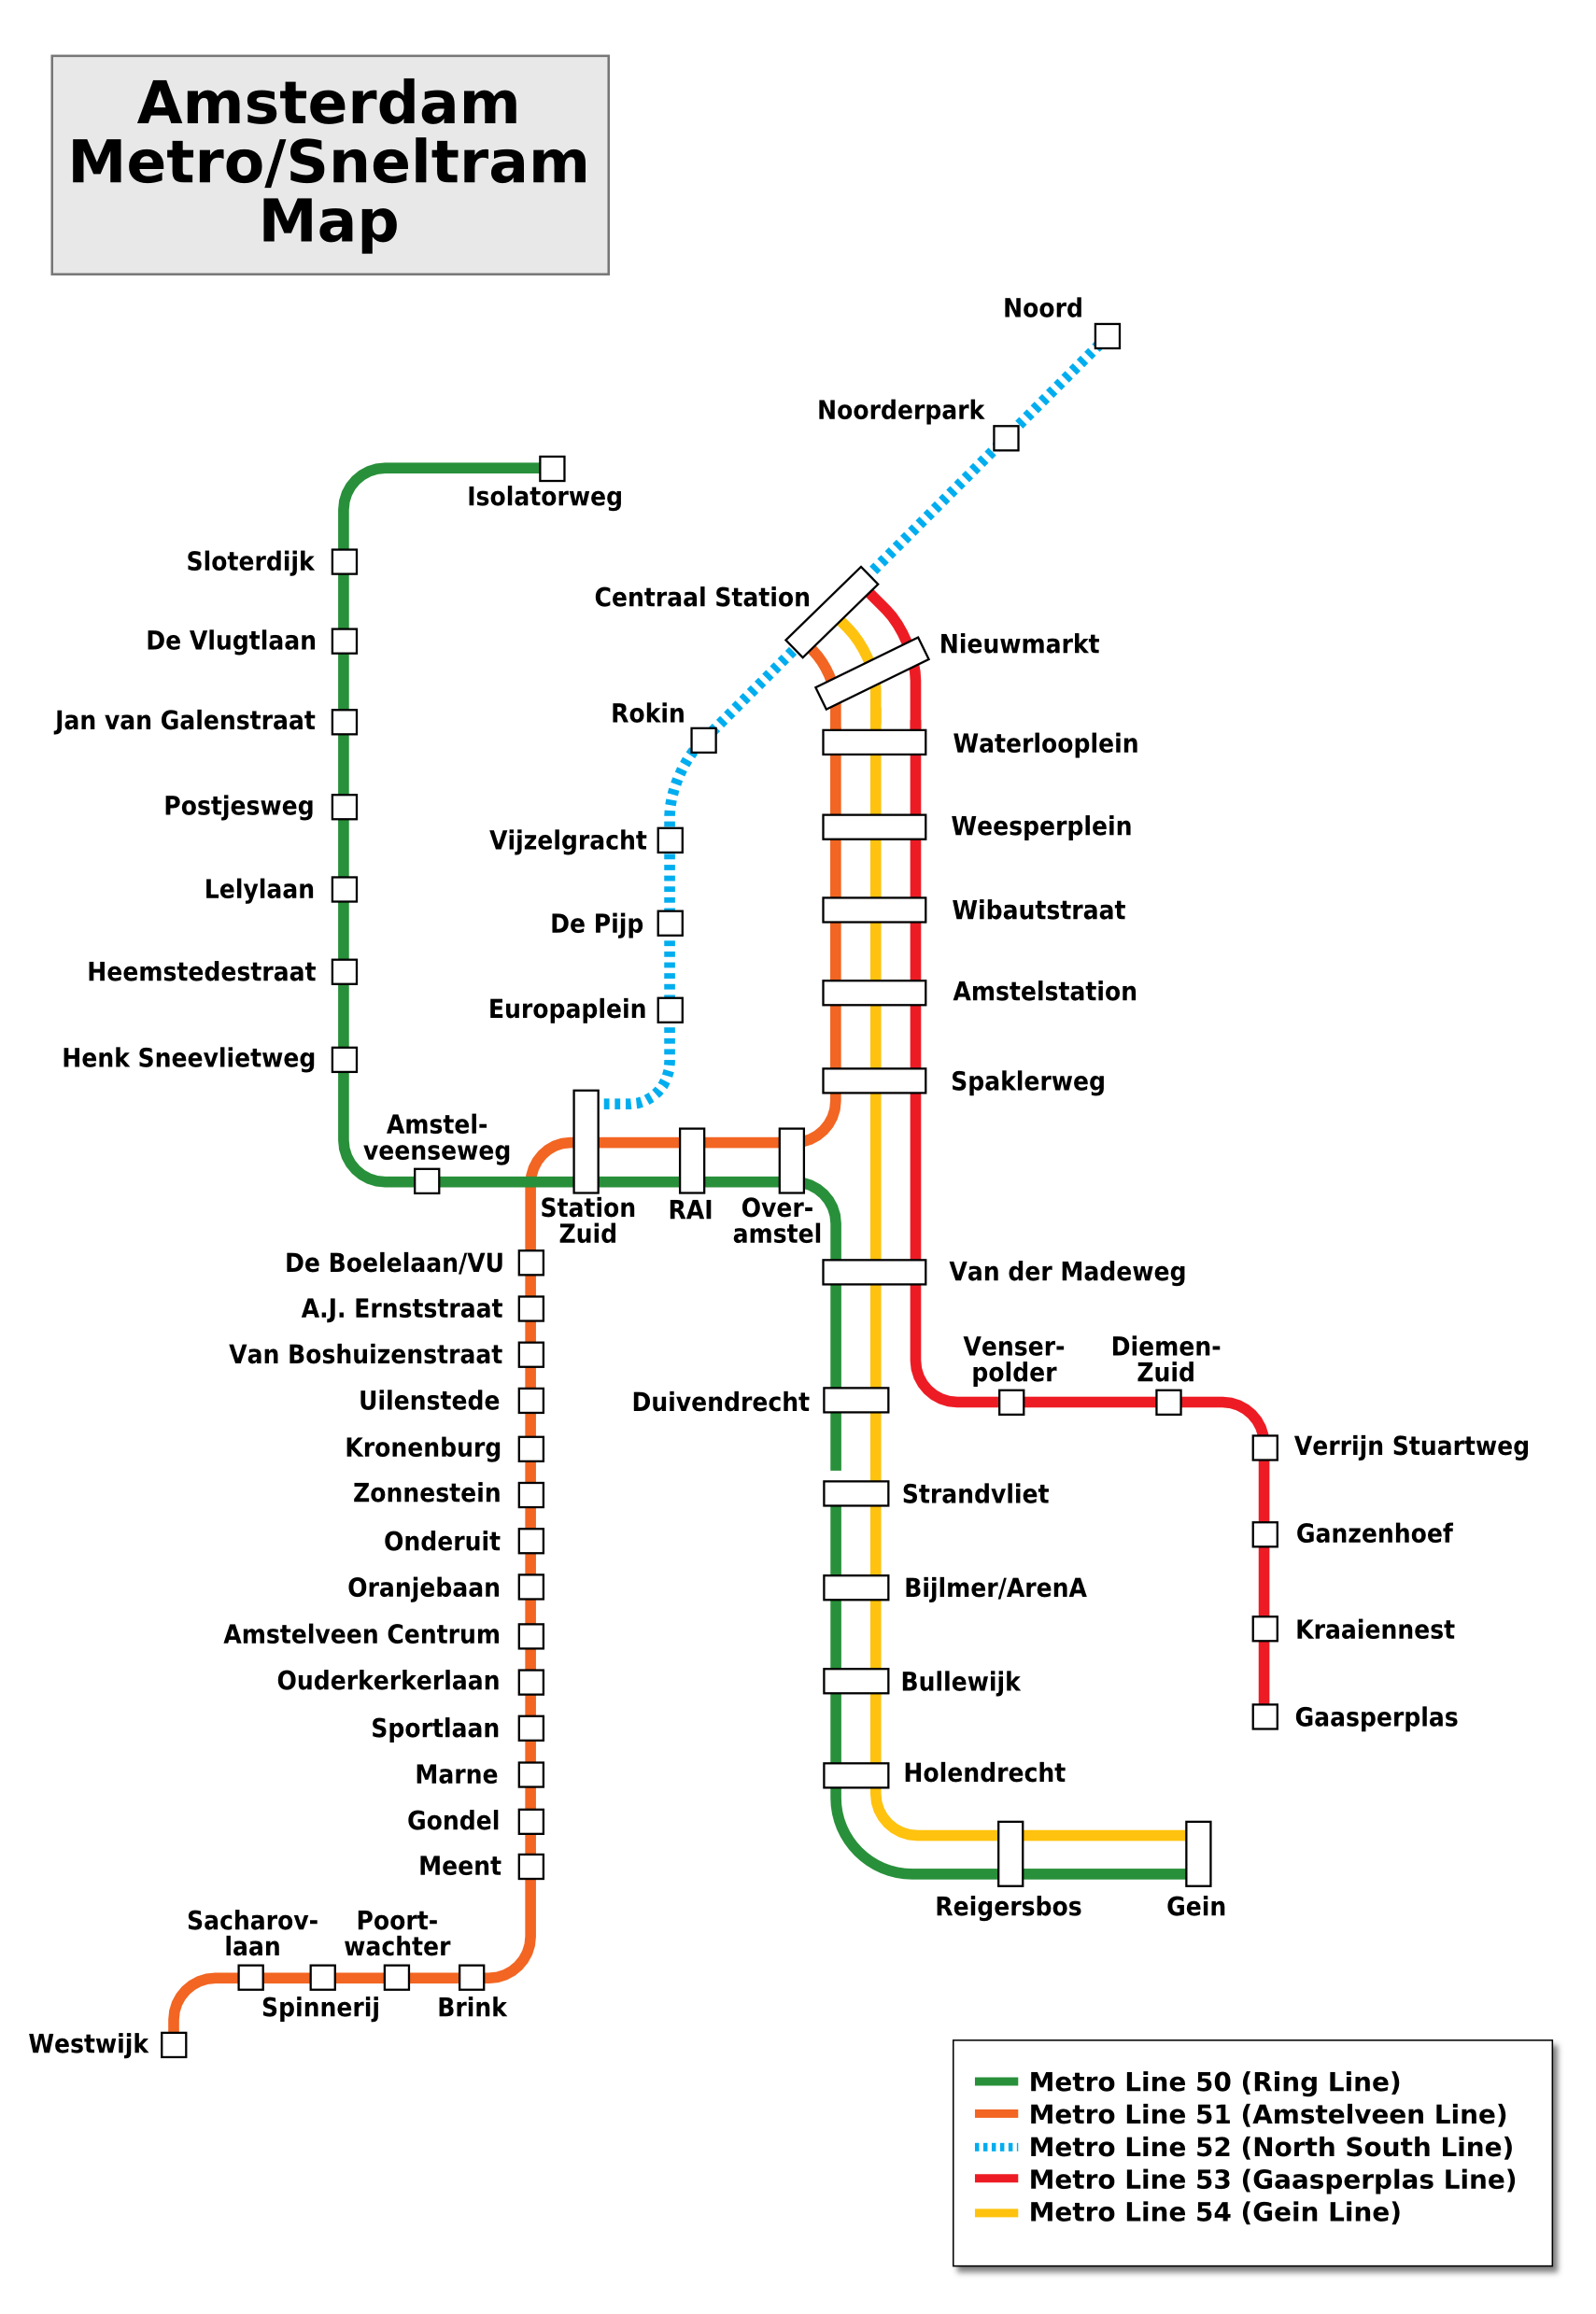 File:Amsterdam-metro-map.png - Wikimedia Commons